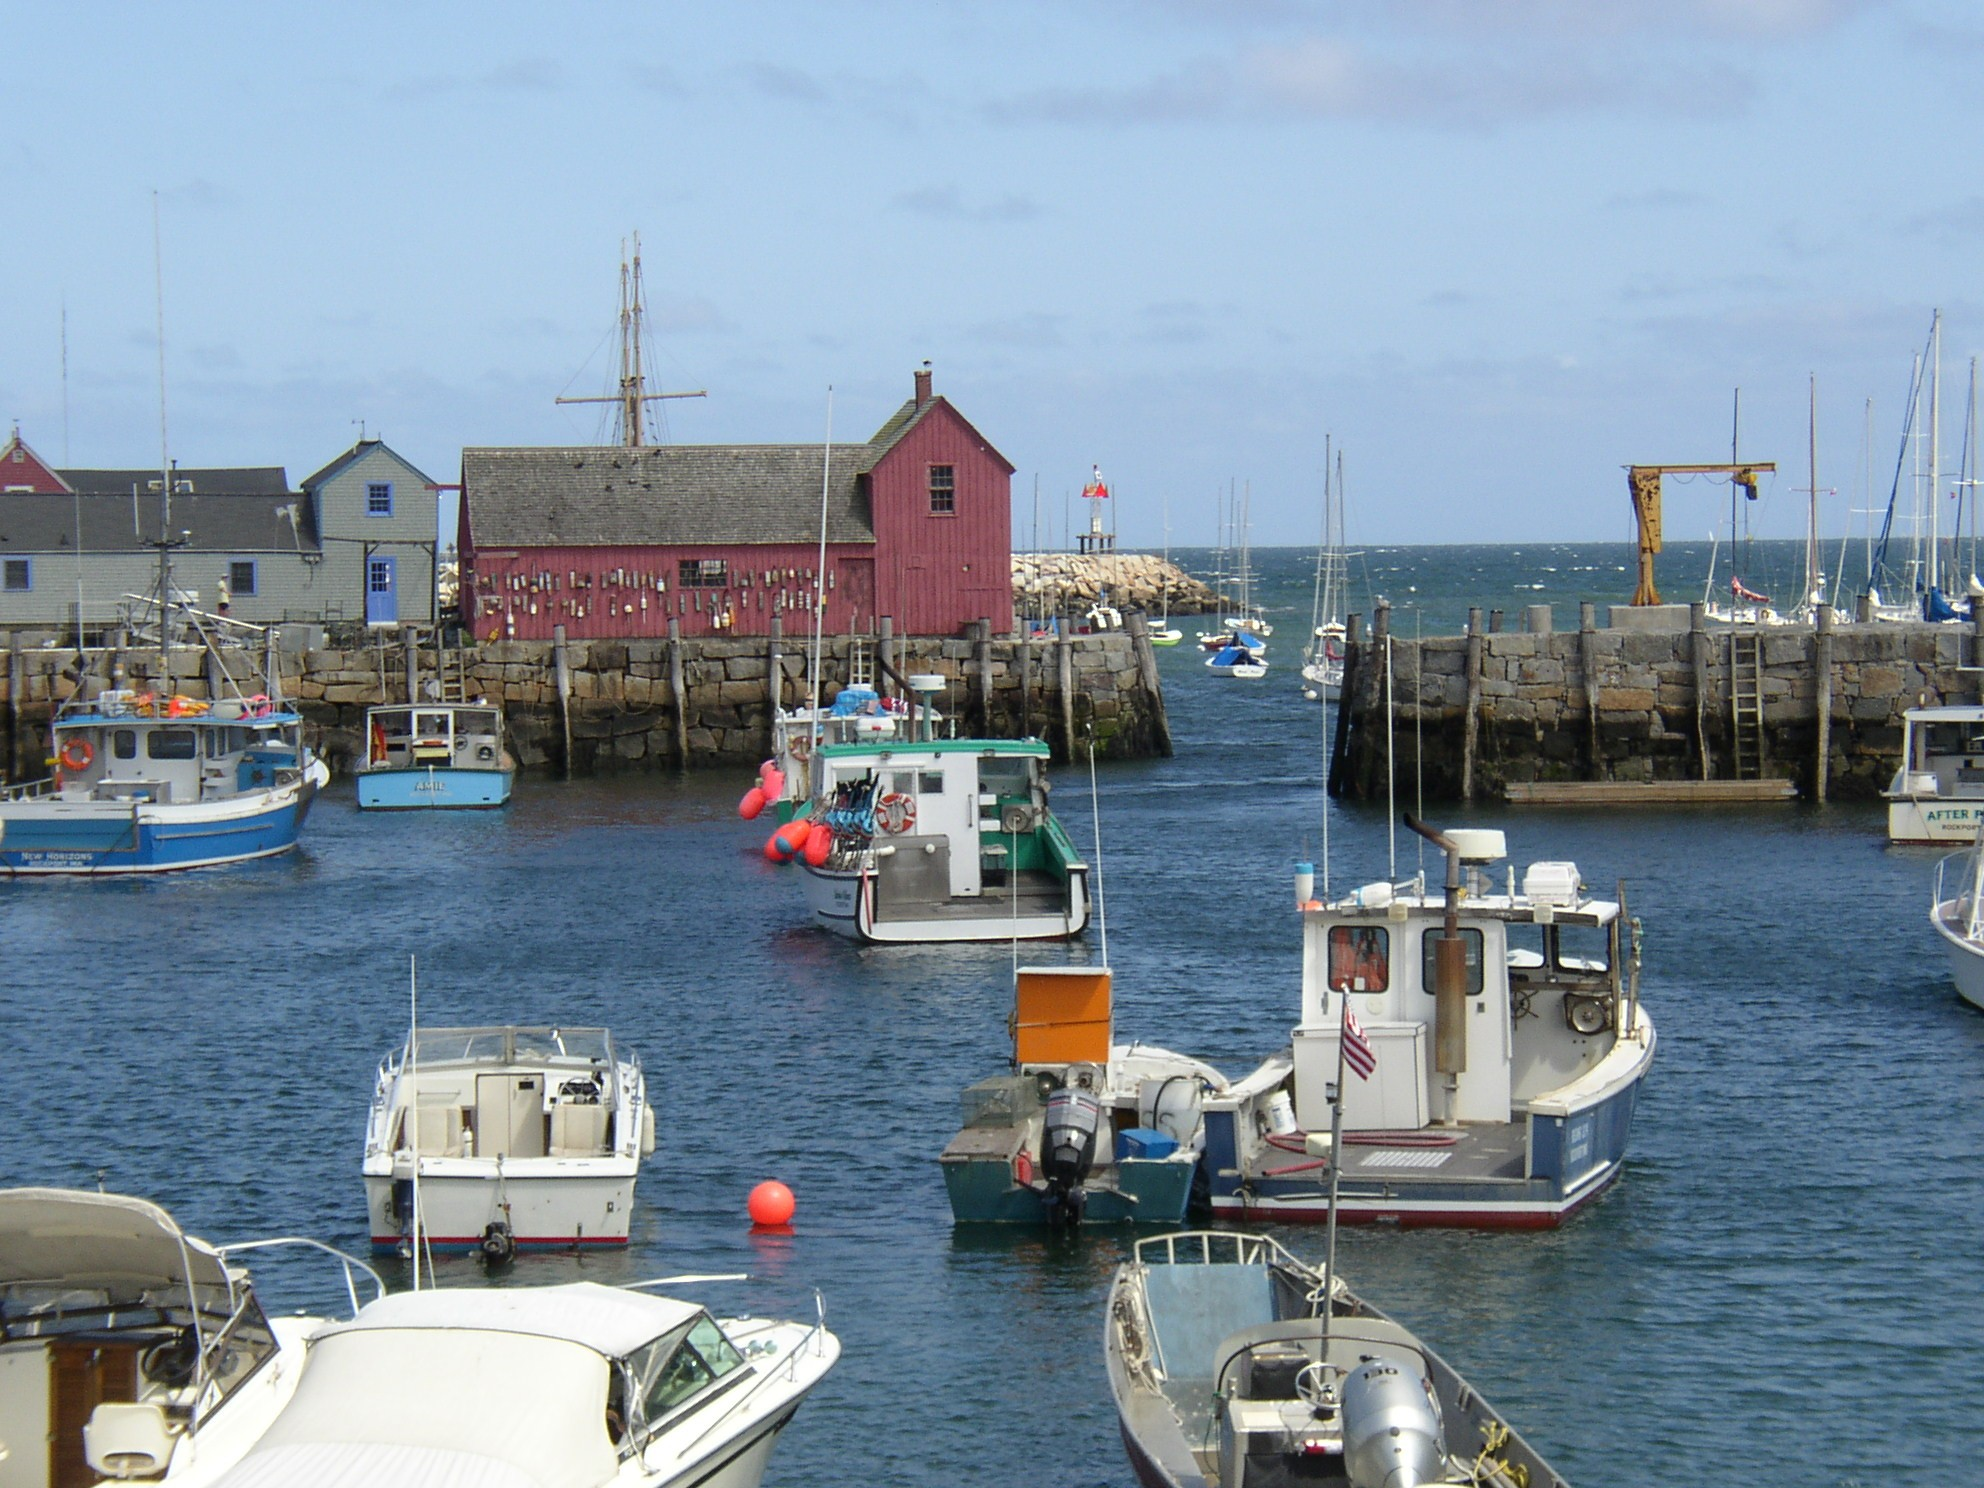 Rockport Massachusetts real estate, Rockport homes, Rockport property, Rockport MA real estate, North Shore real estate, Essex County Massachusetts, real estate office, real estate agent, real estate for sale, RE/MAX real estate, homes for sale, buy a condo, real estate property search